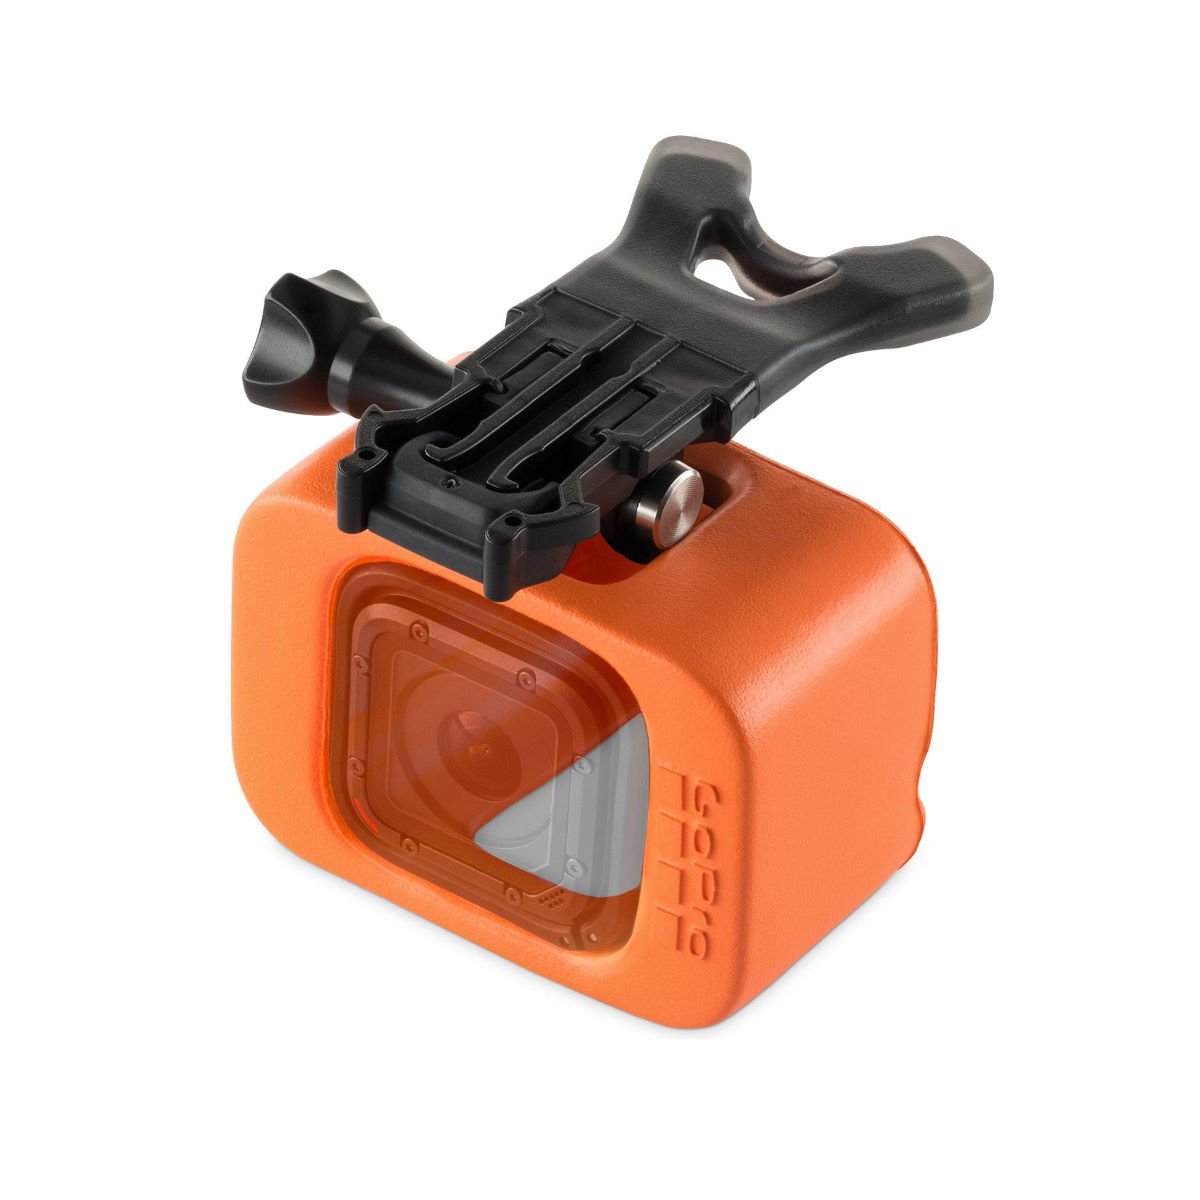 GoPro Bite Mount + Floaty (for HERO Session cameras) - Soportes para cámaras